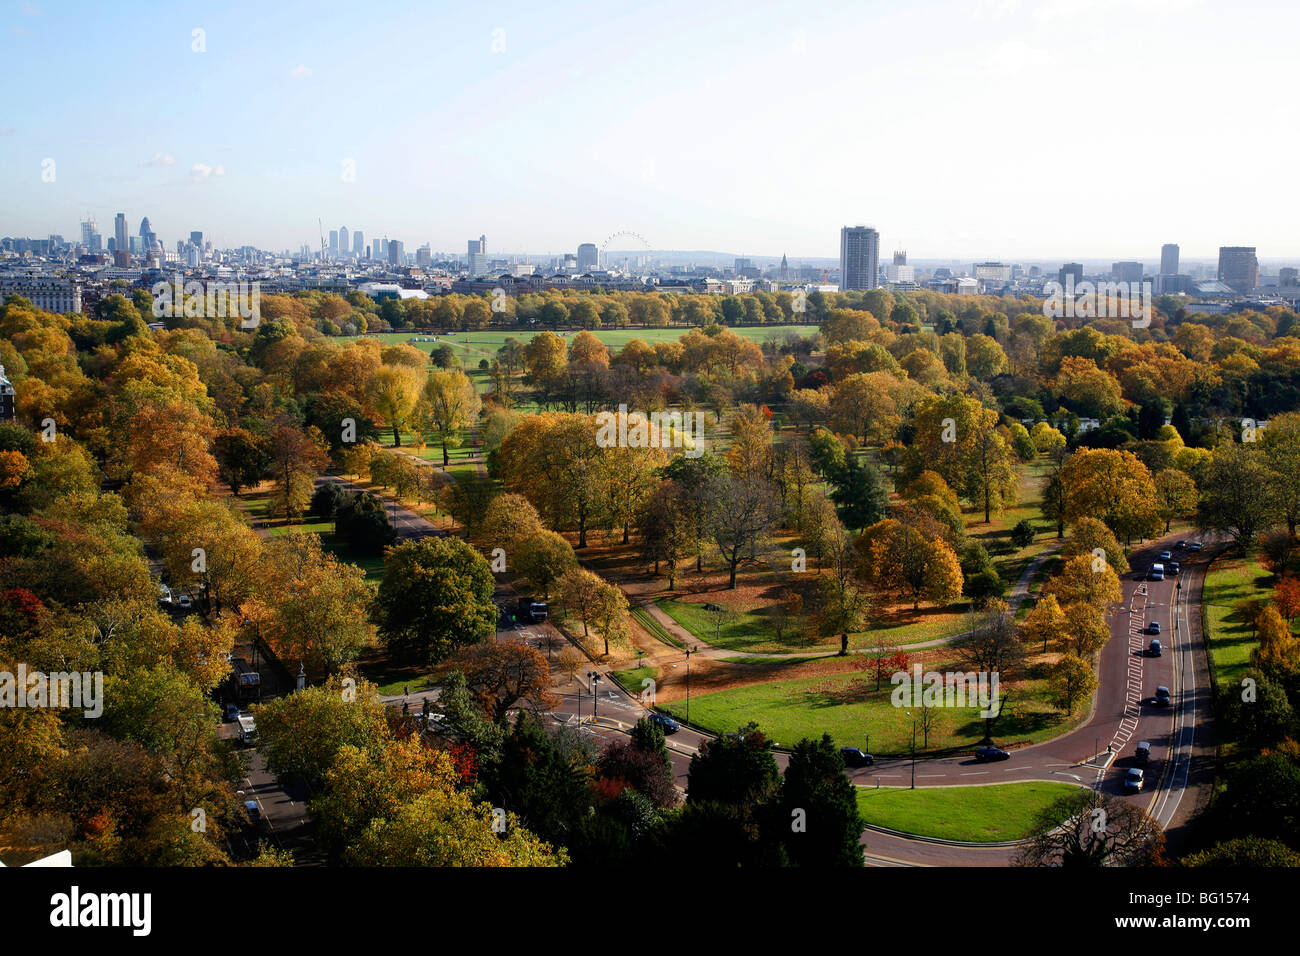 Aerial view over Hyde Park towards West End and the City of London, London, UK Stock Photo